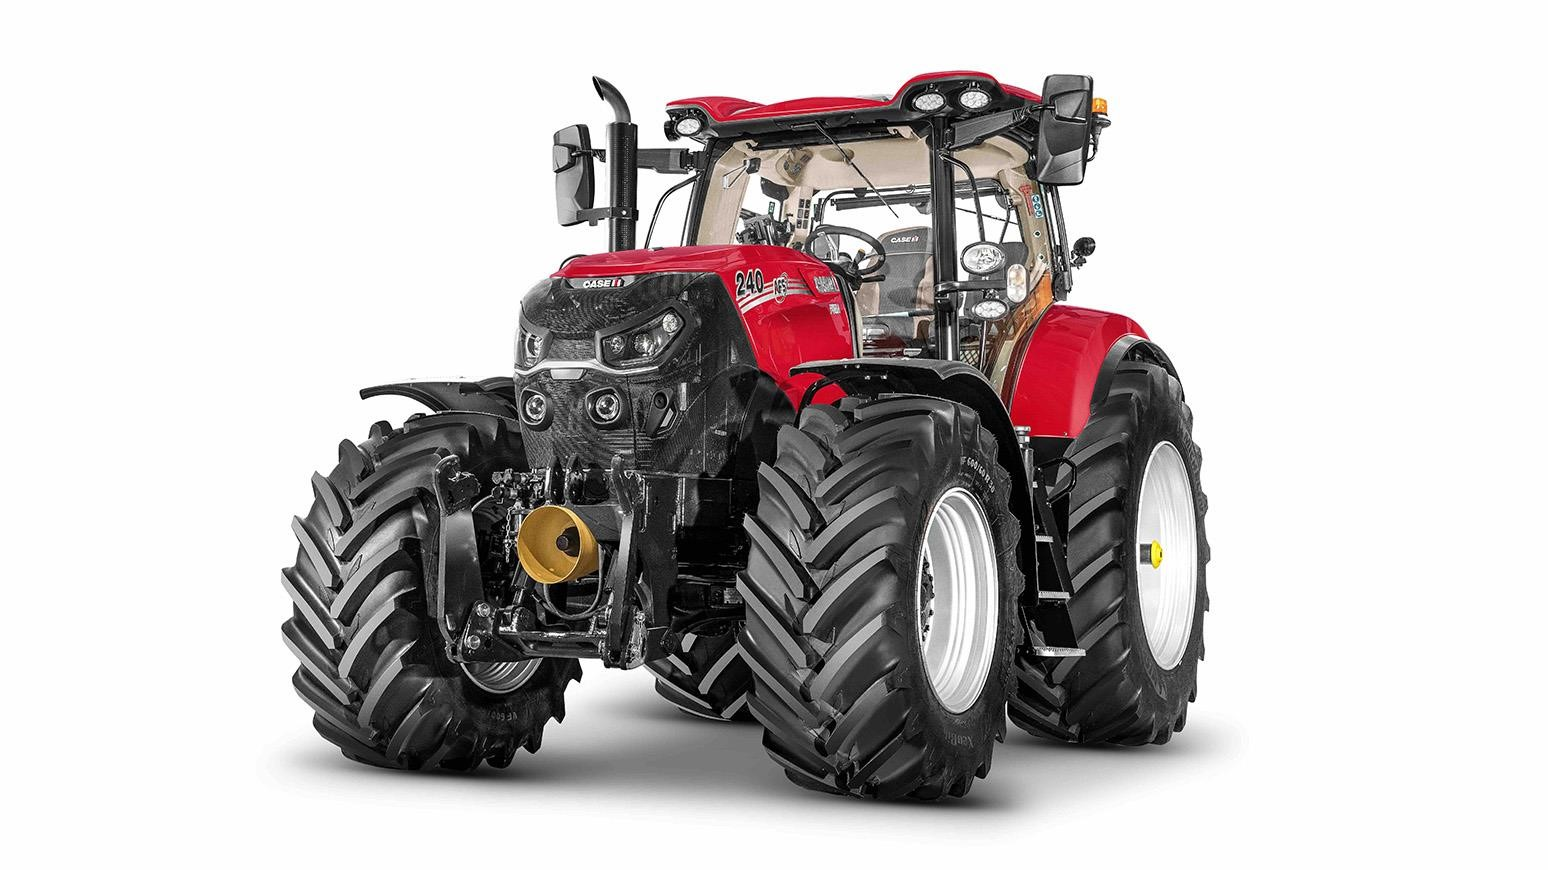 Antorchas ANTES DE CRISTO. adoptar  Case IH Announces Tractor, Combine, AFS & Other Updates At Agritechnica  2019 | Farm Machinery Locator Blog